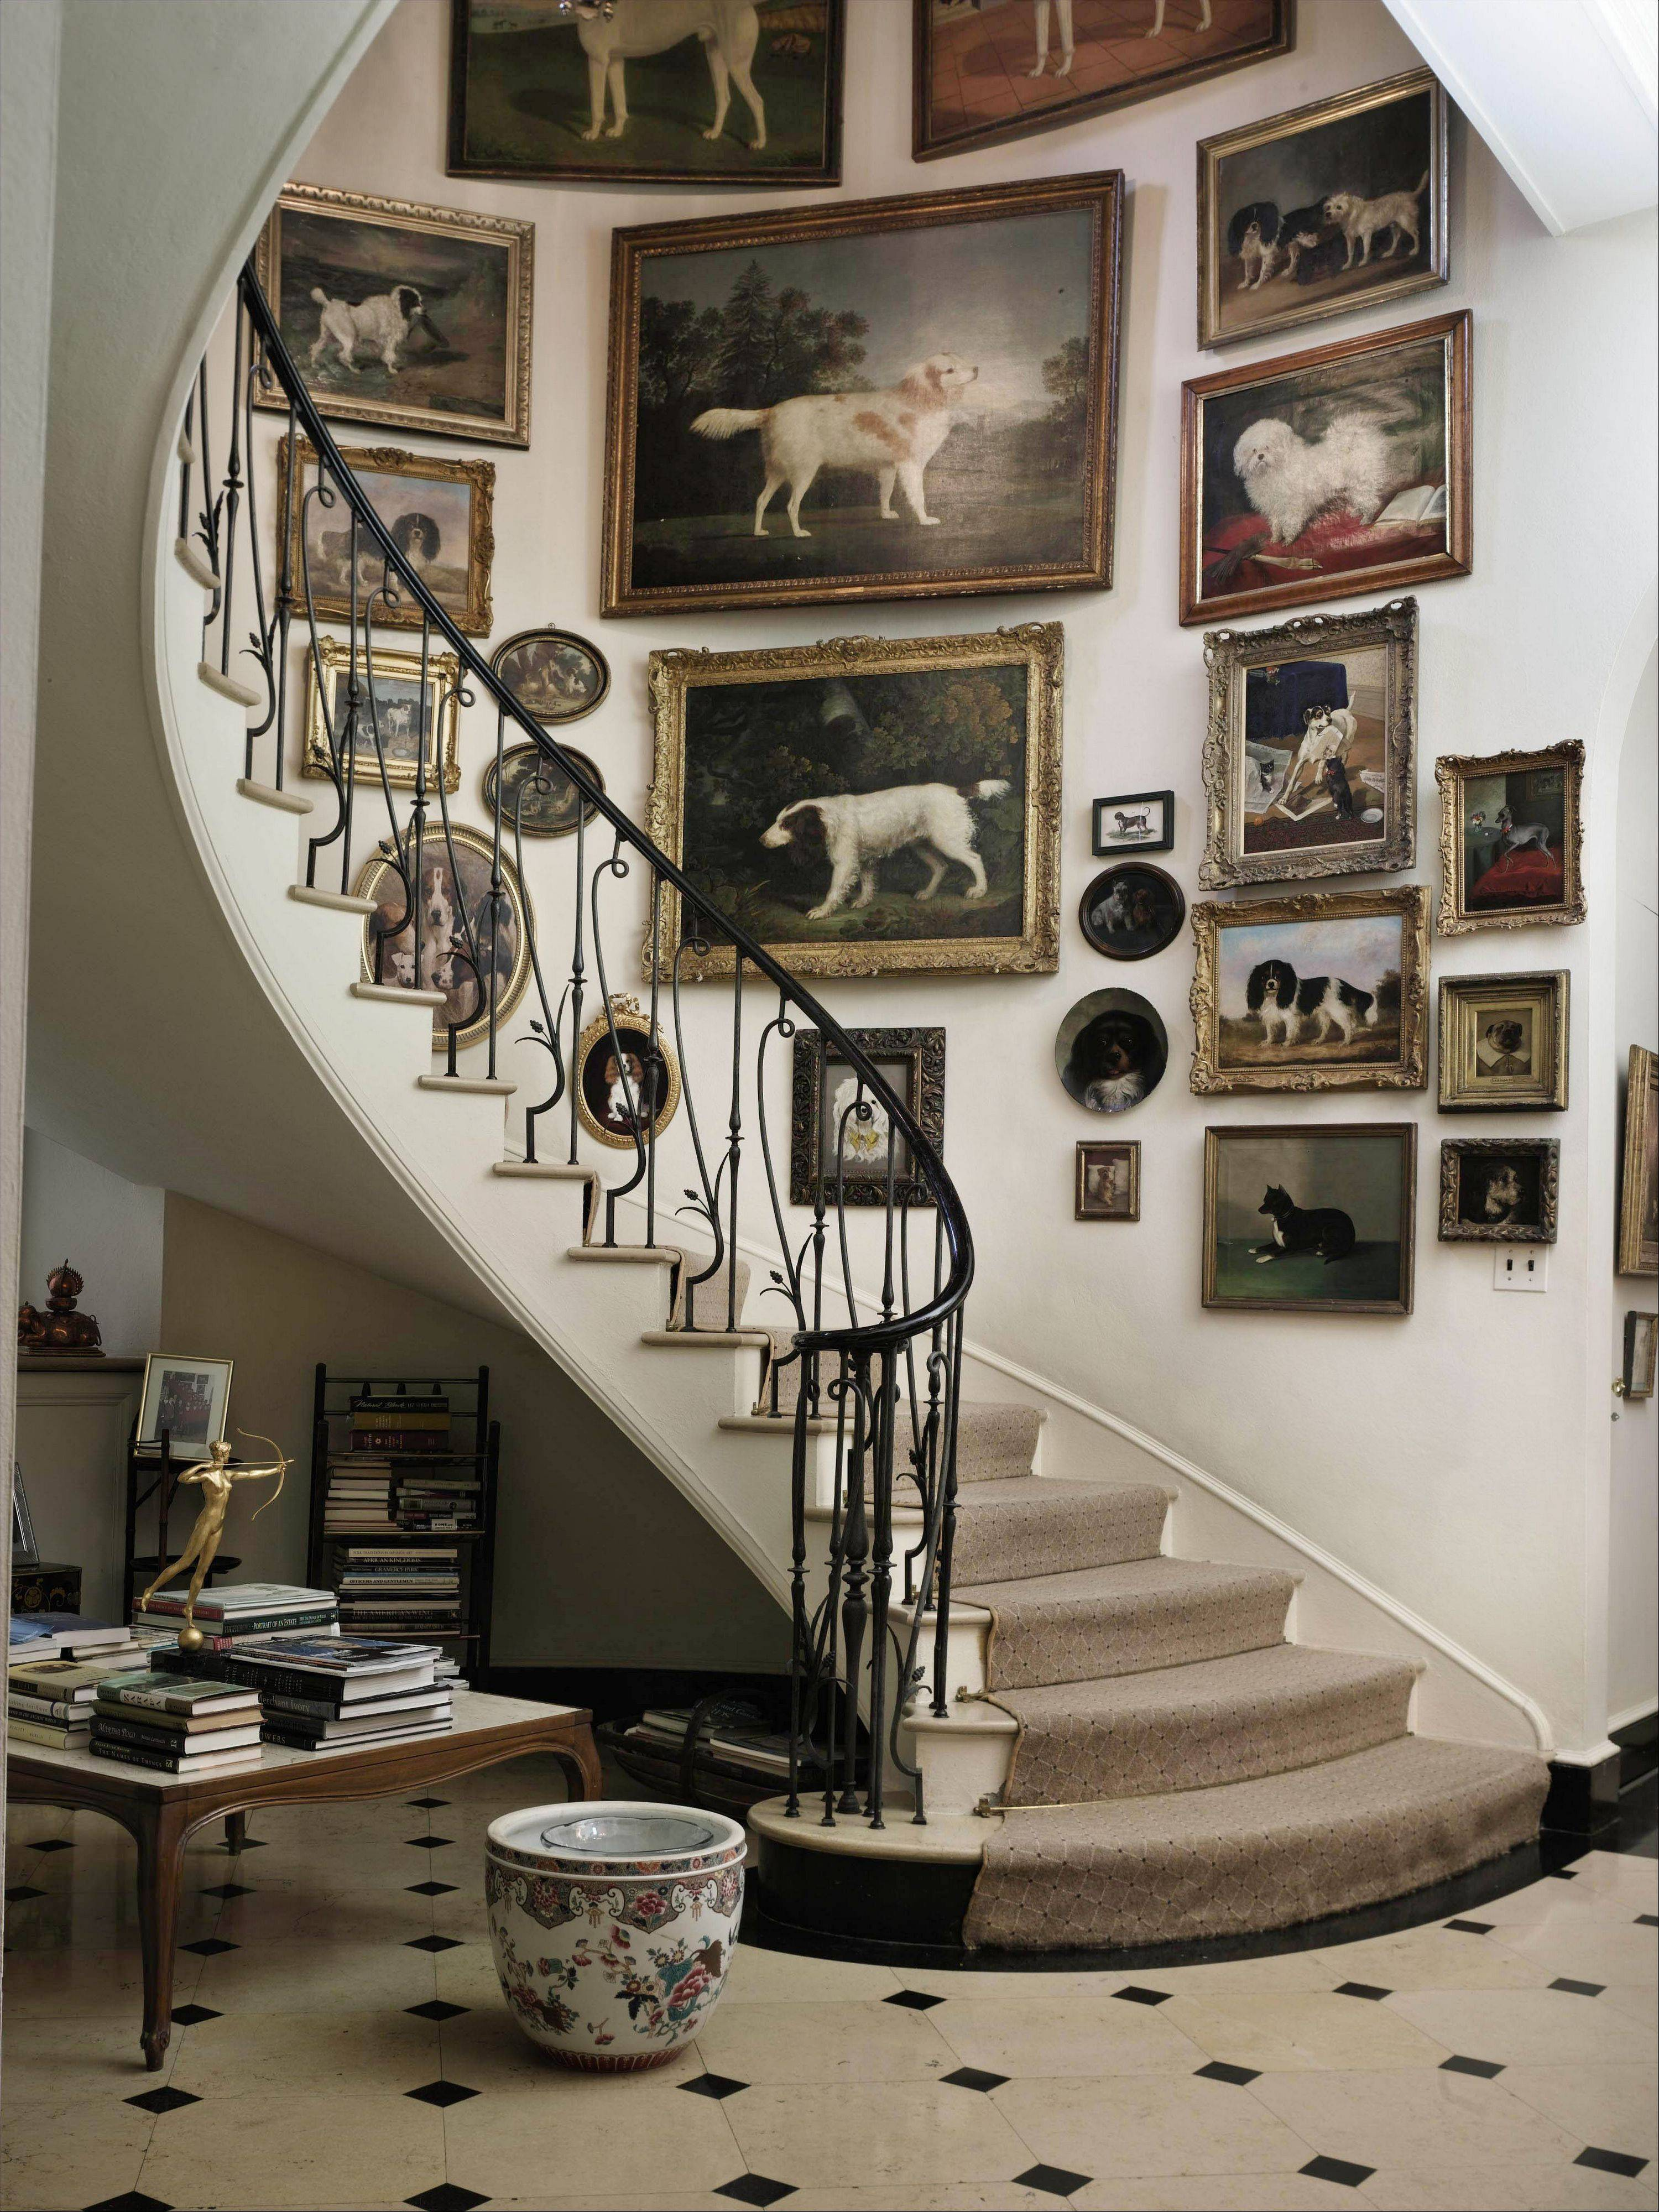 The pre-auction staircase at Brooke Astor's Westchester estate, Holly Hill, in Briarcliff Manor, New York.